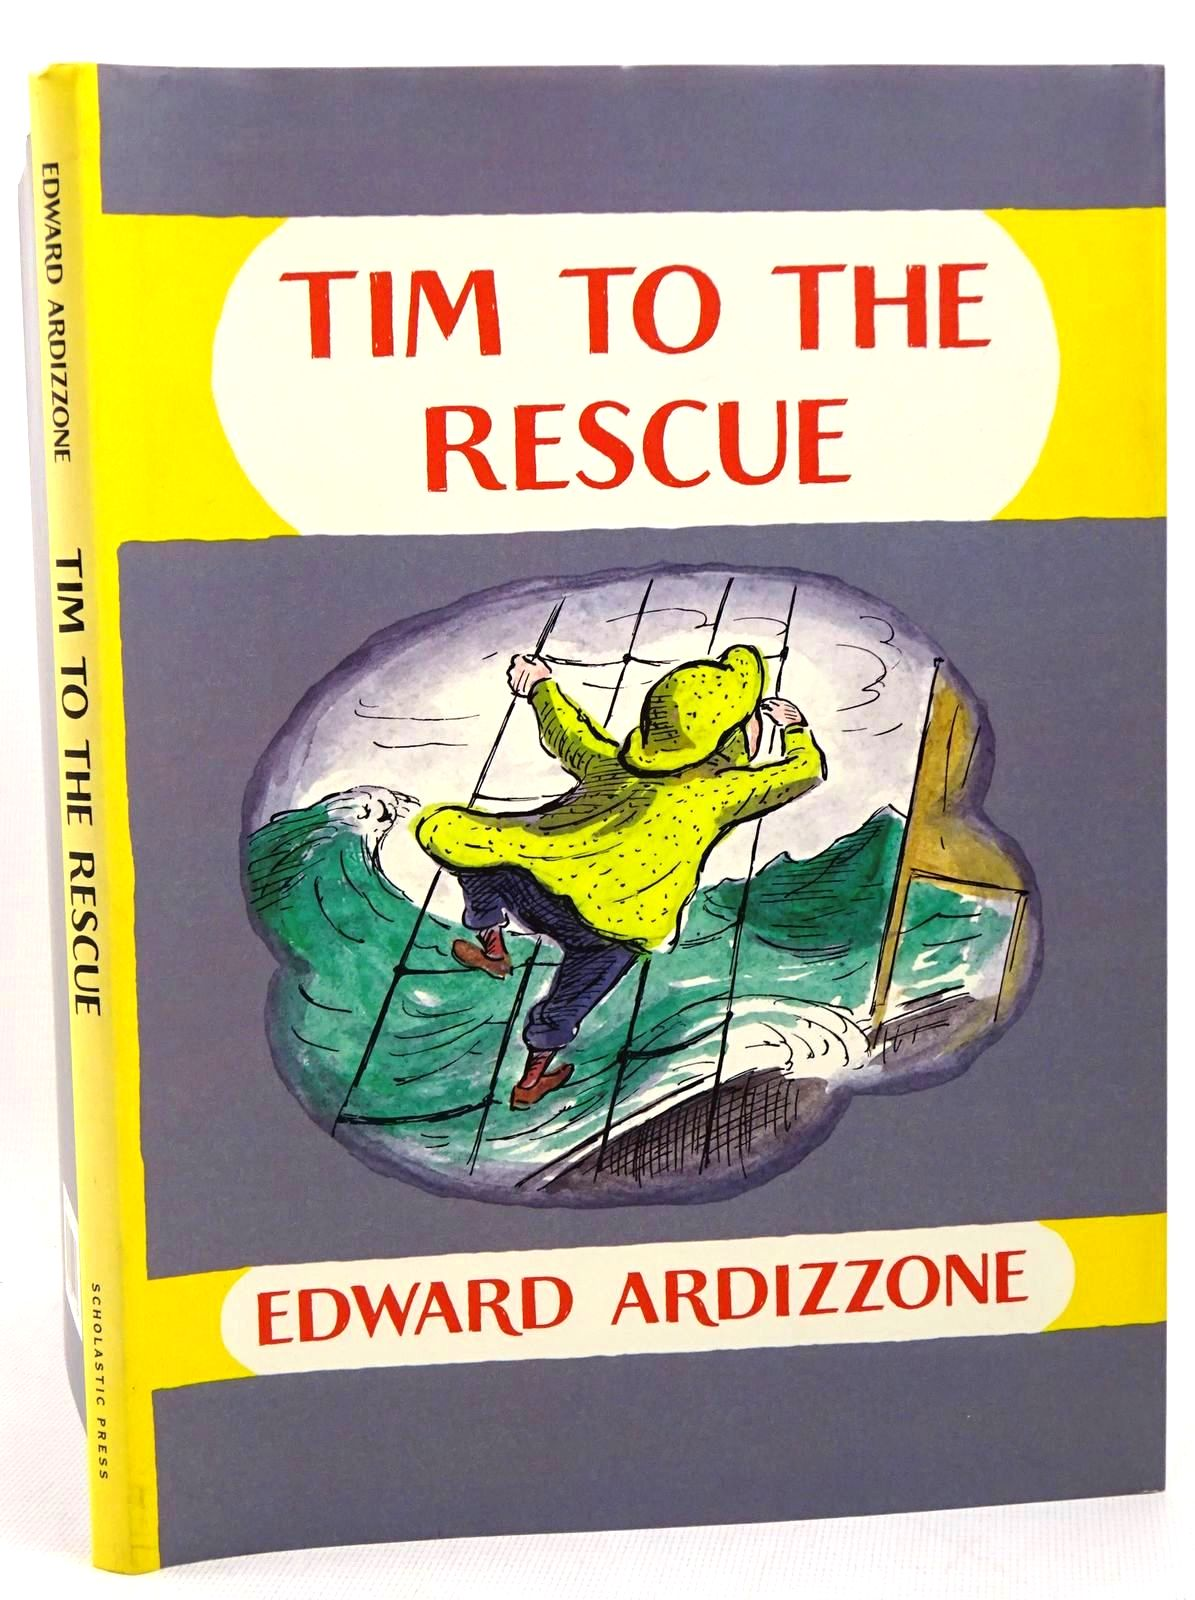 Photo of TIM TO THE RESCUE written by Ardizzone, Edward illustrated by Ardizzone, Edward published by Scholastic Press (STOCK CODE: 1317591)  for sale by Stella & Rose's Books